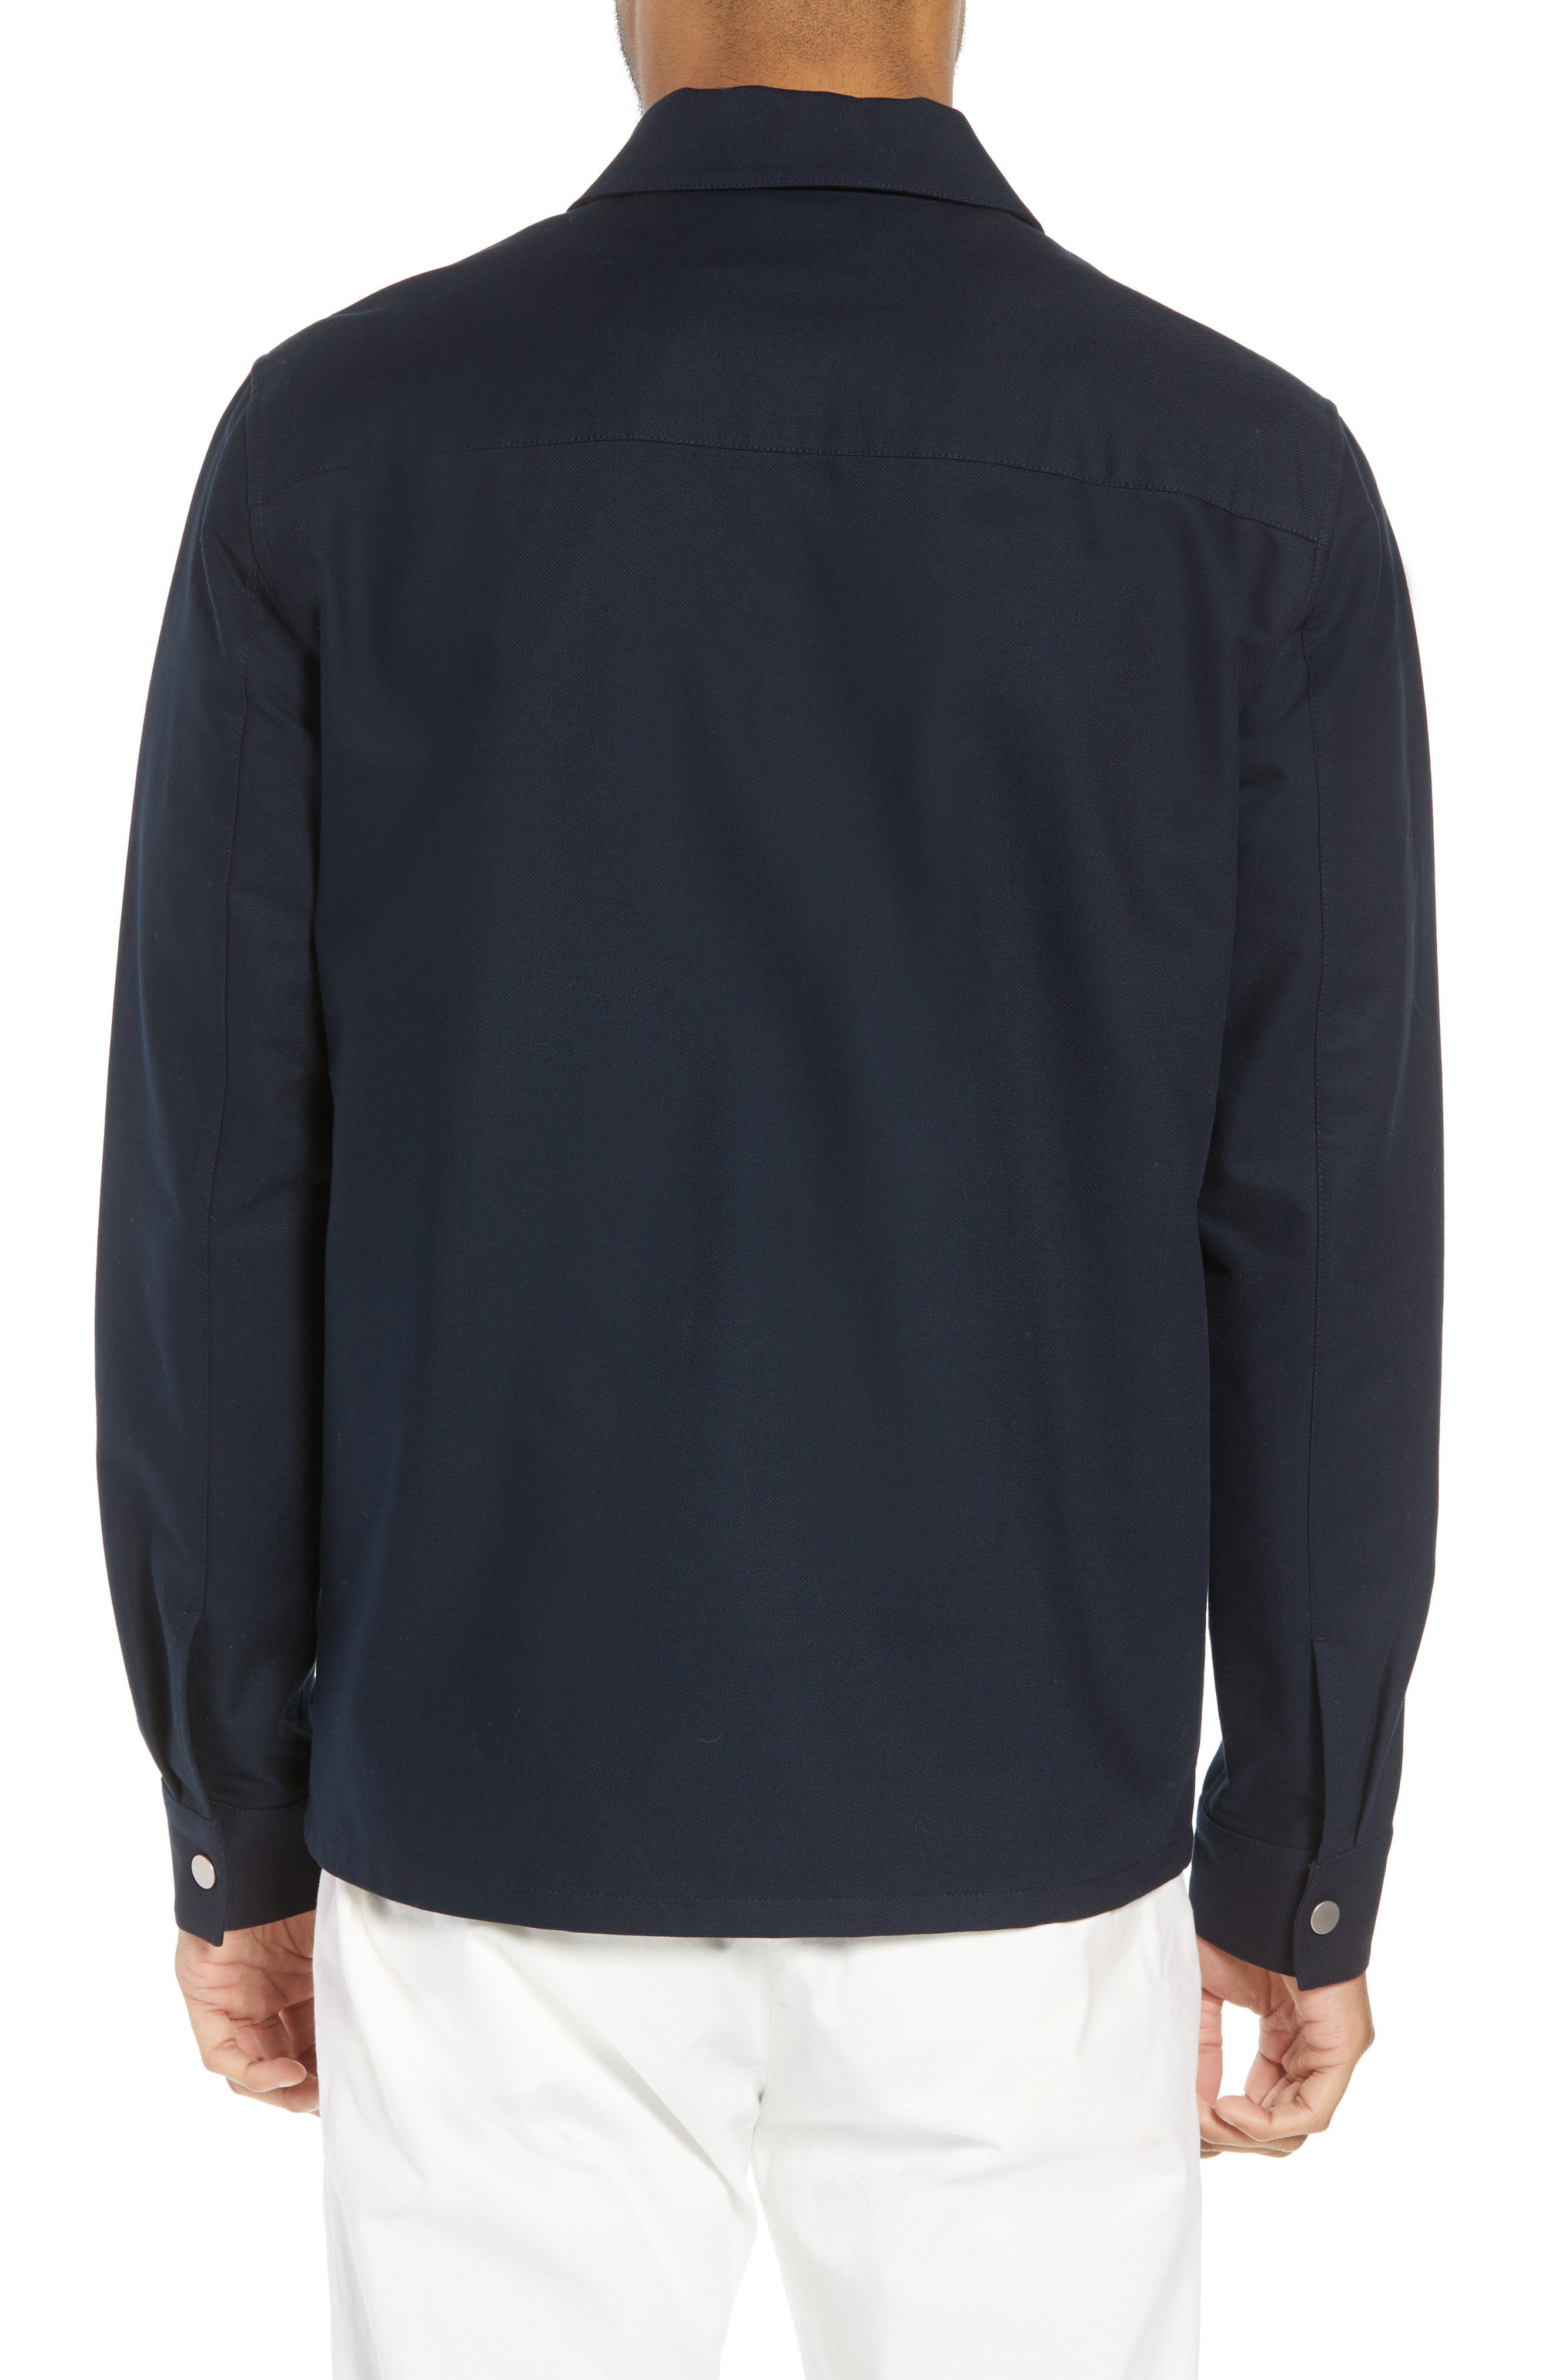 THEORY,                             Rye Stretch Cotton Jacket,                             Alternate thumbnail 2, color,                             497